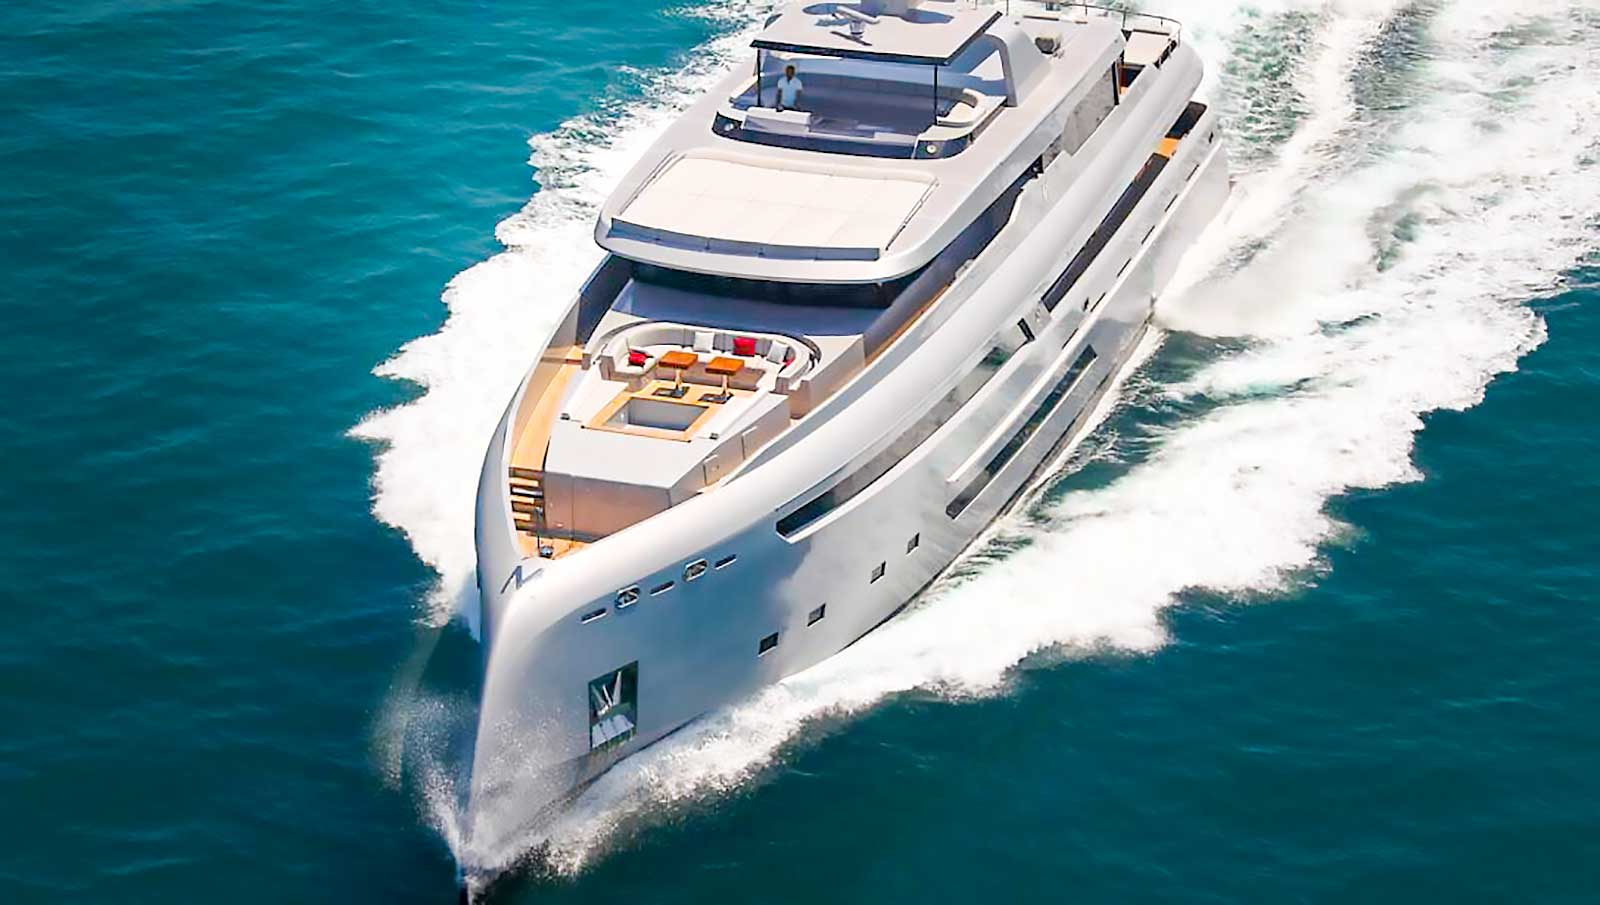 50m motor yacht OCEAN CLUB offering reduced rate in the Bahamas